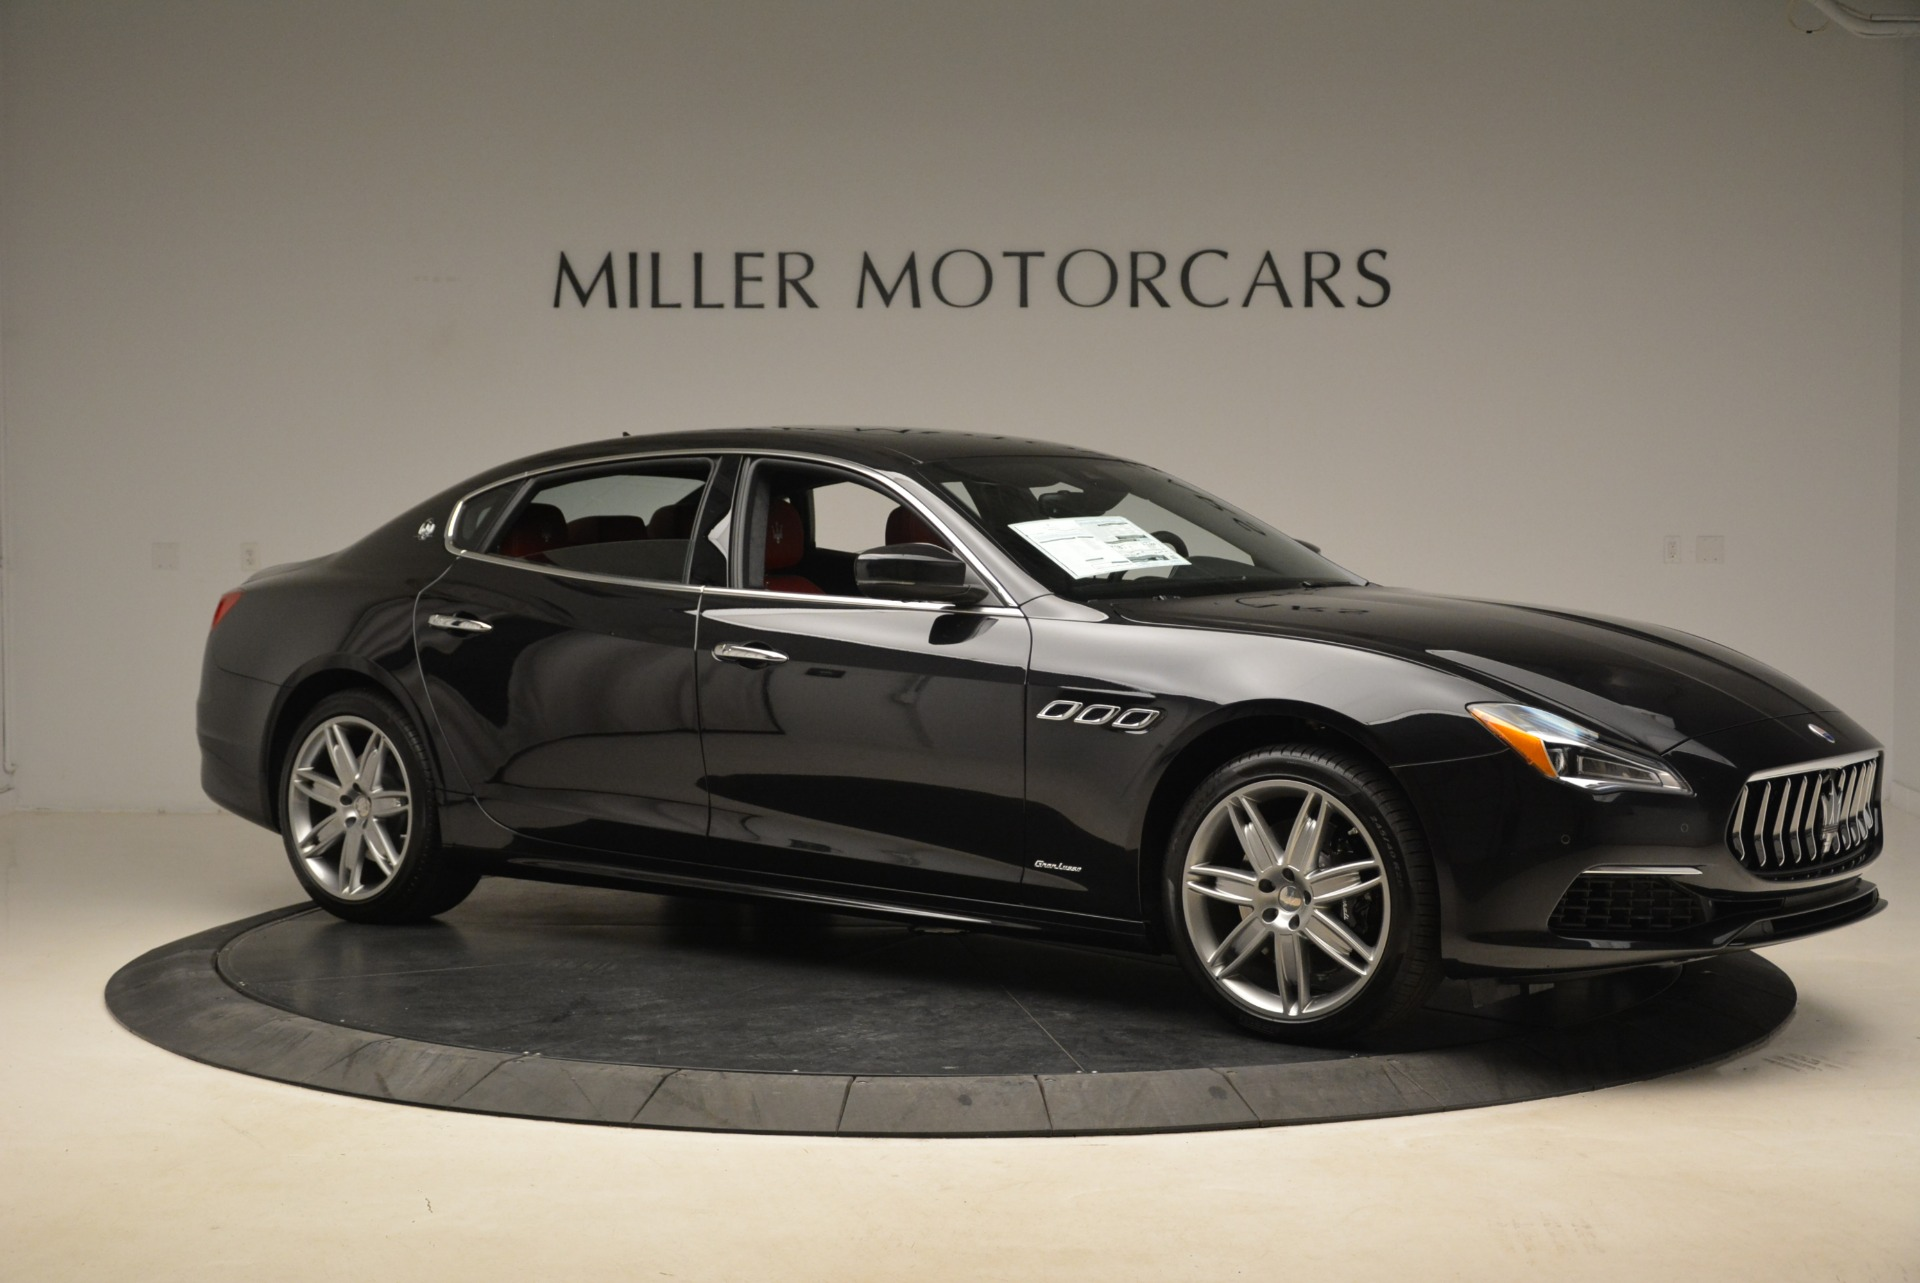 New 2018 Maserati Quattroporte S Q4 GranLusso For Sale In Greenwich, CT 2296_p10